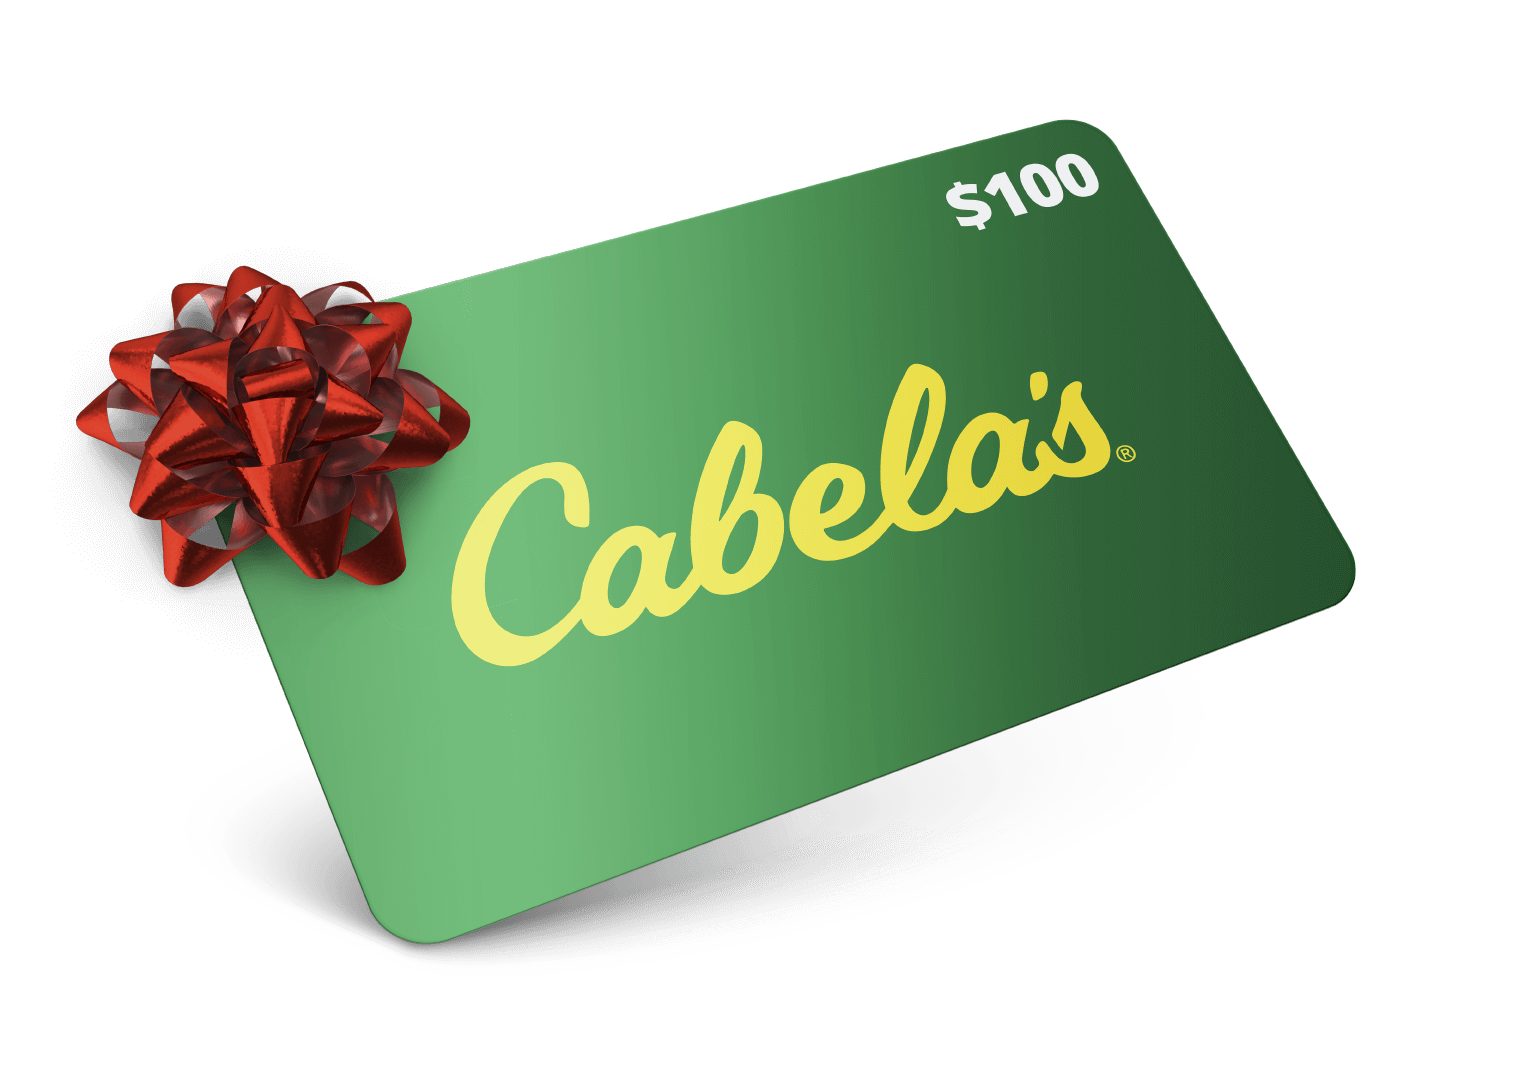 Image of gift card with name cabelas on it.